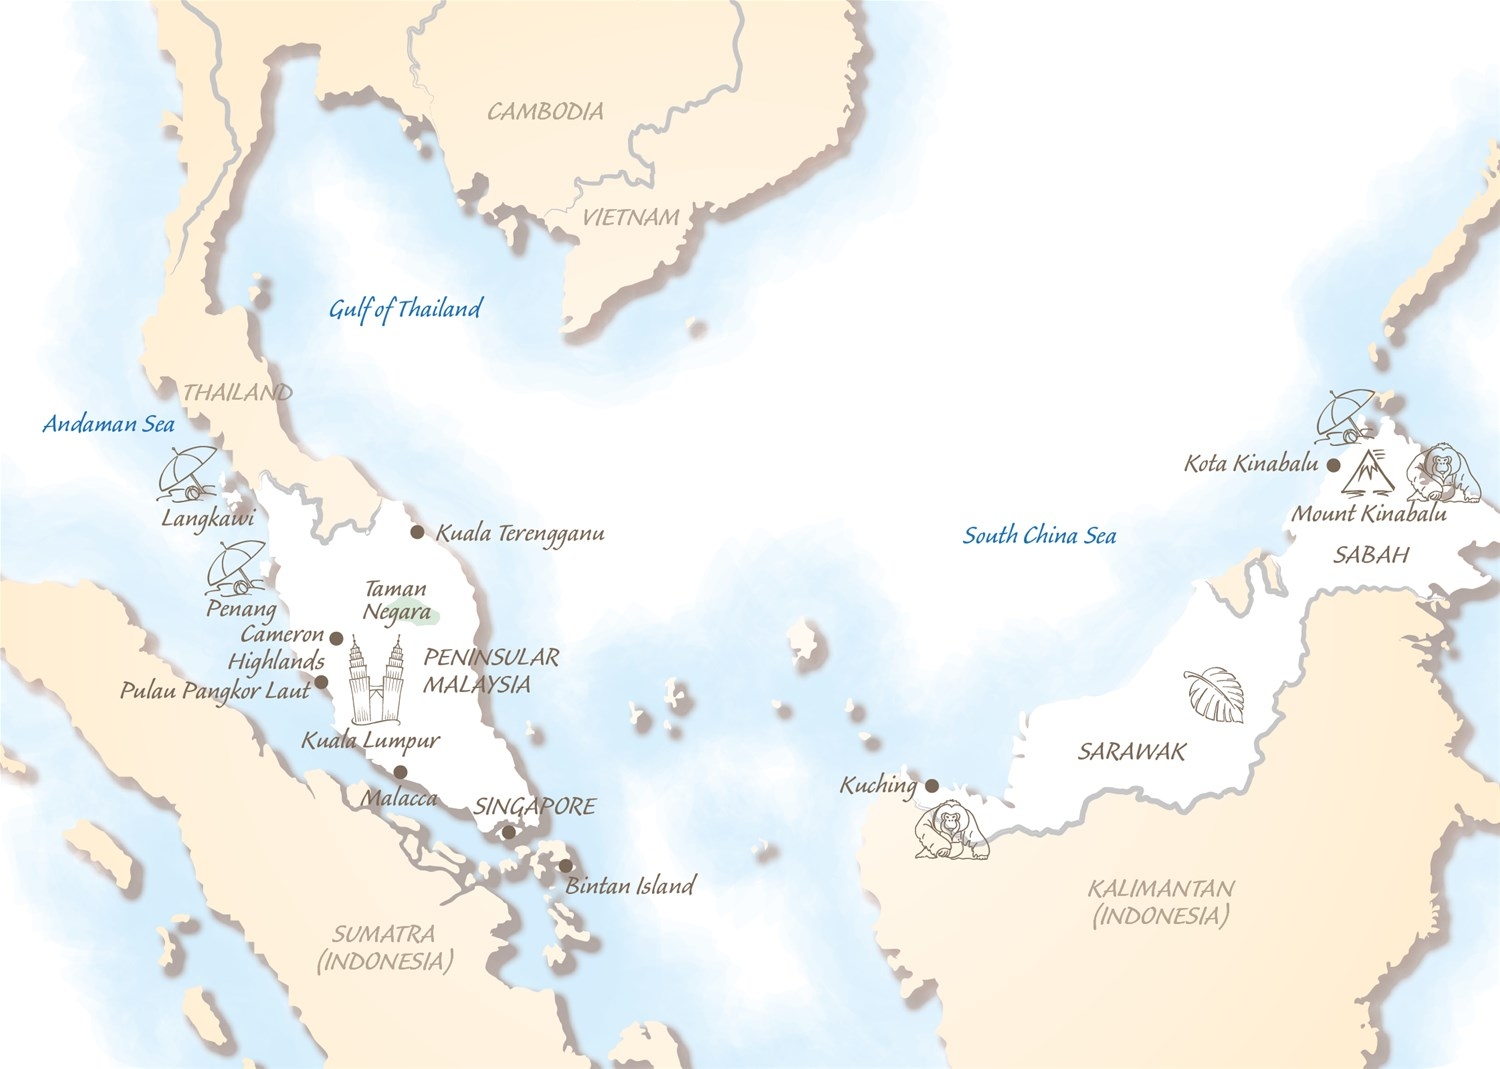 Malaysia holidays trailfinders south east asia malaysia map gumiabroncs Images